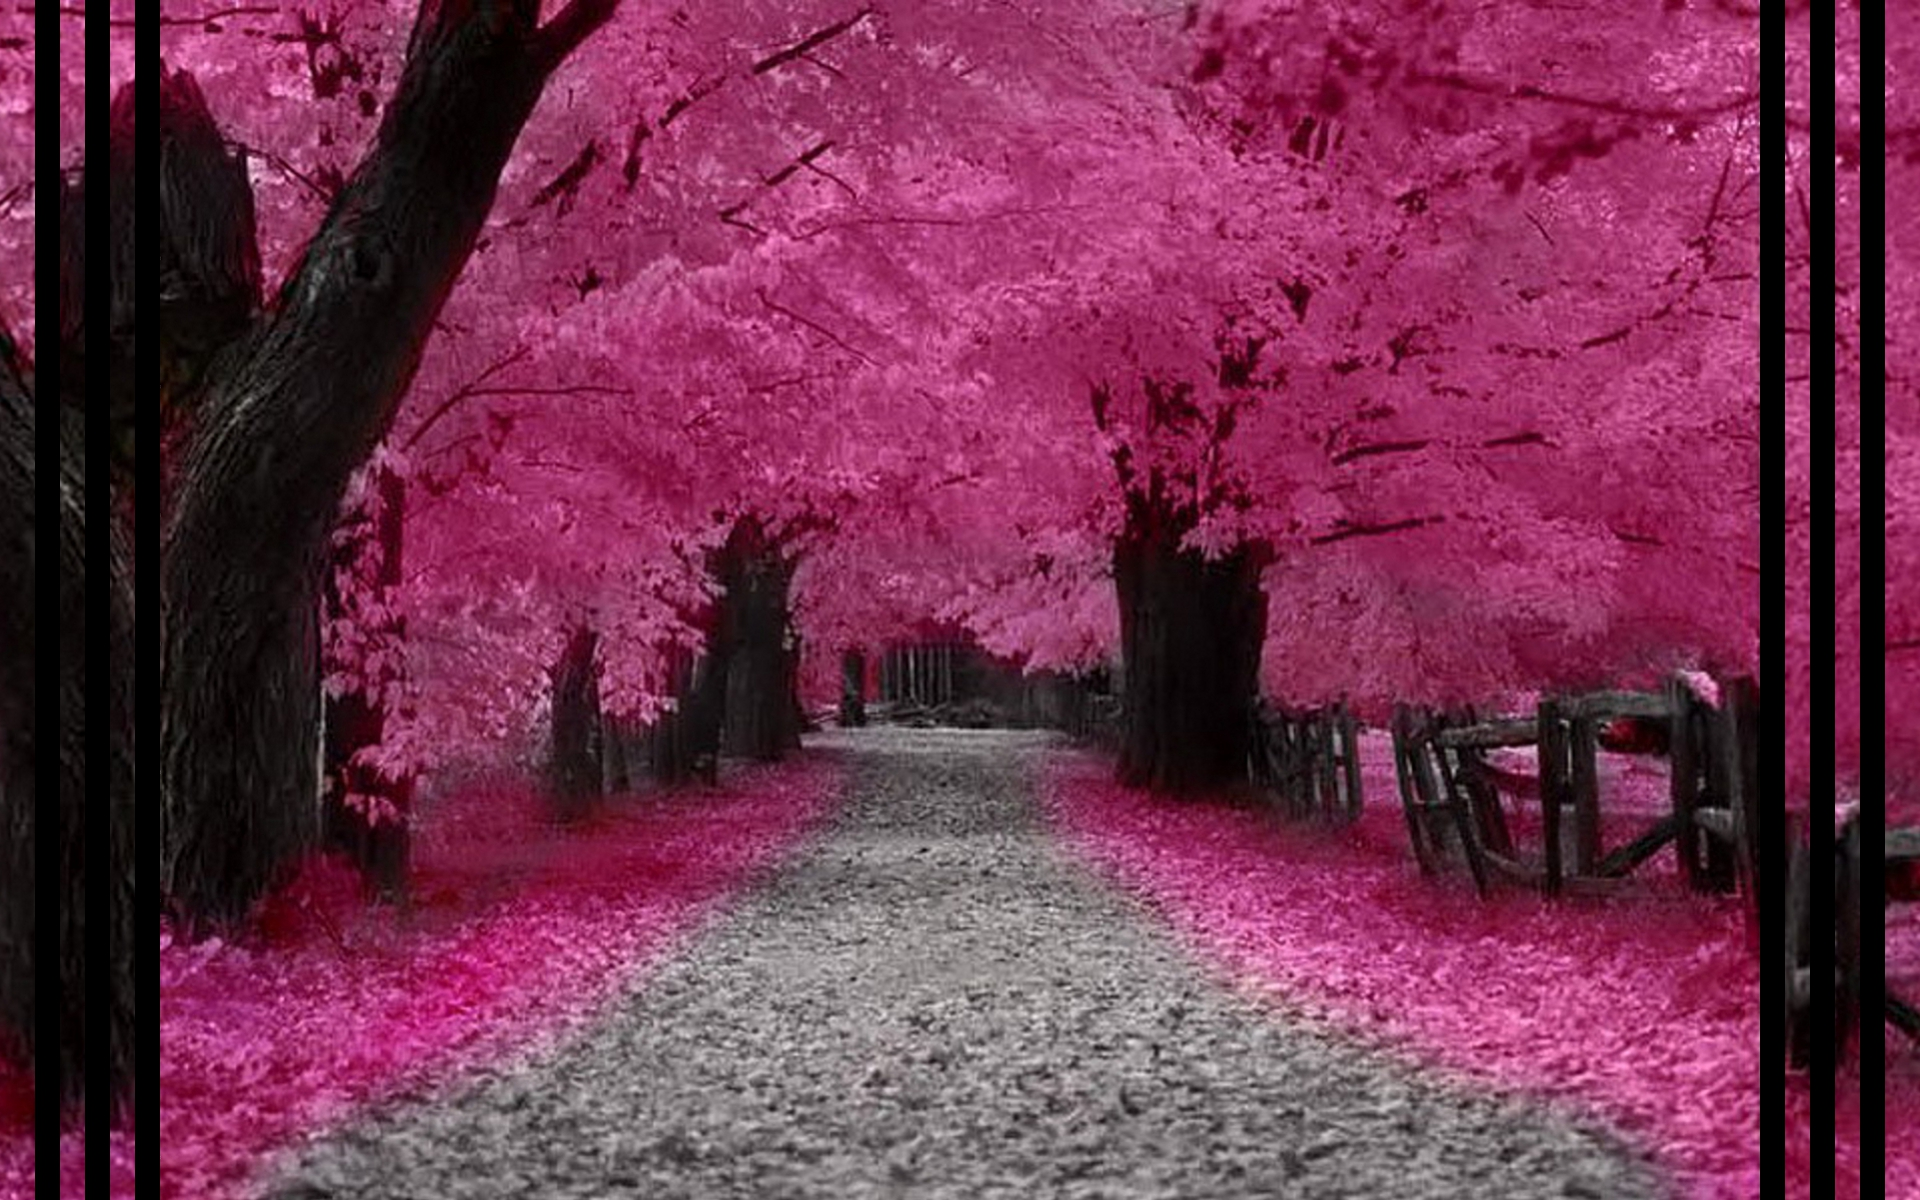 blossom forest fantasy images wallpaper images picture download